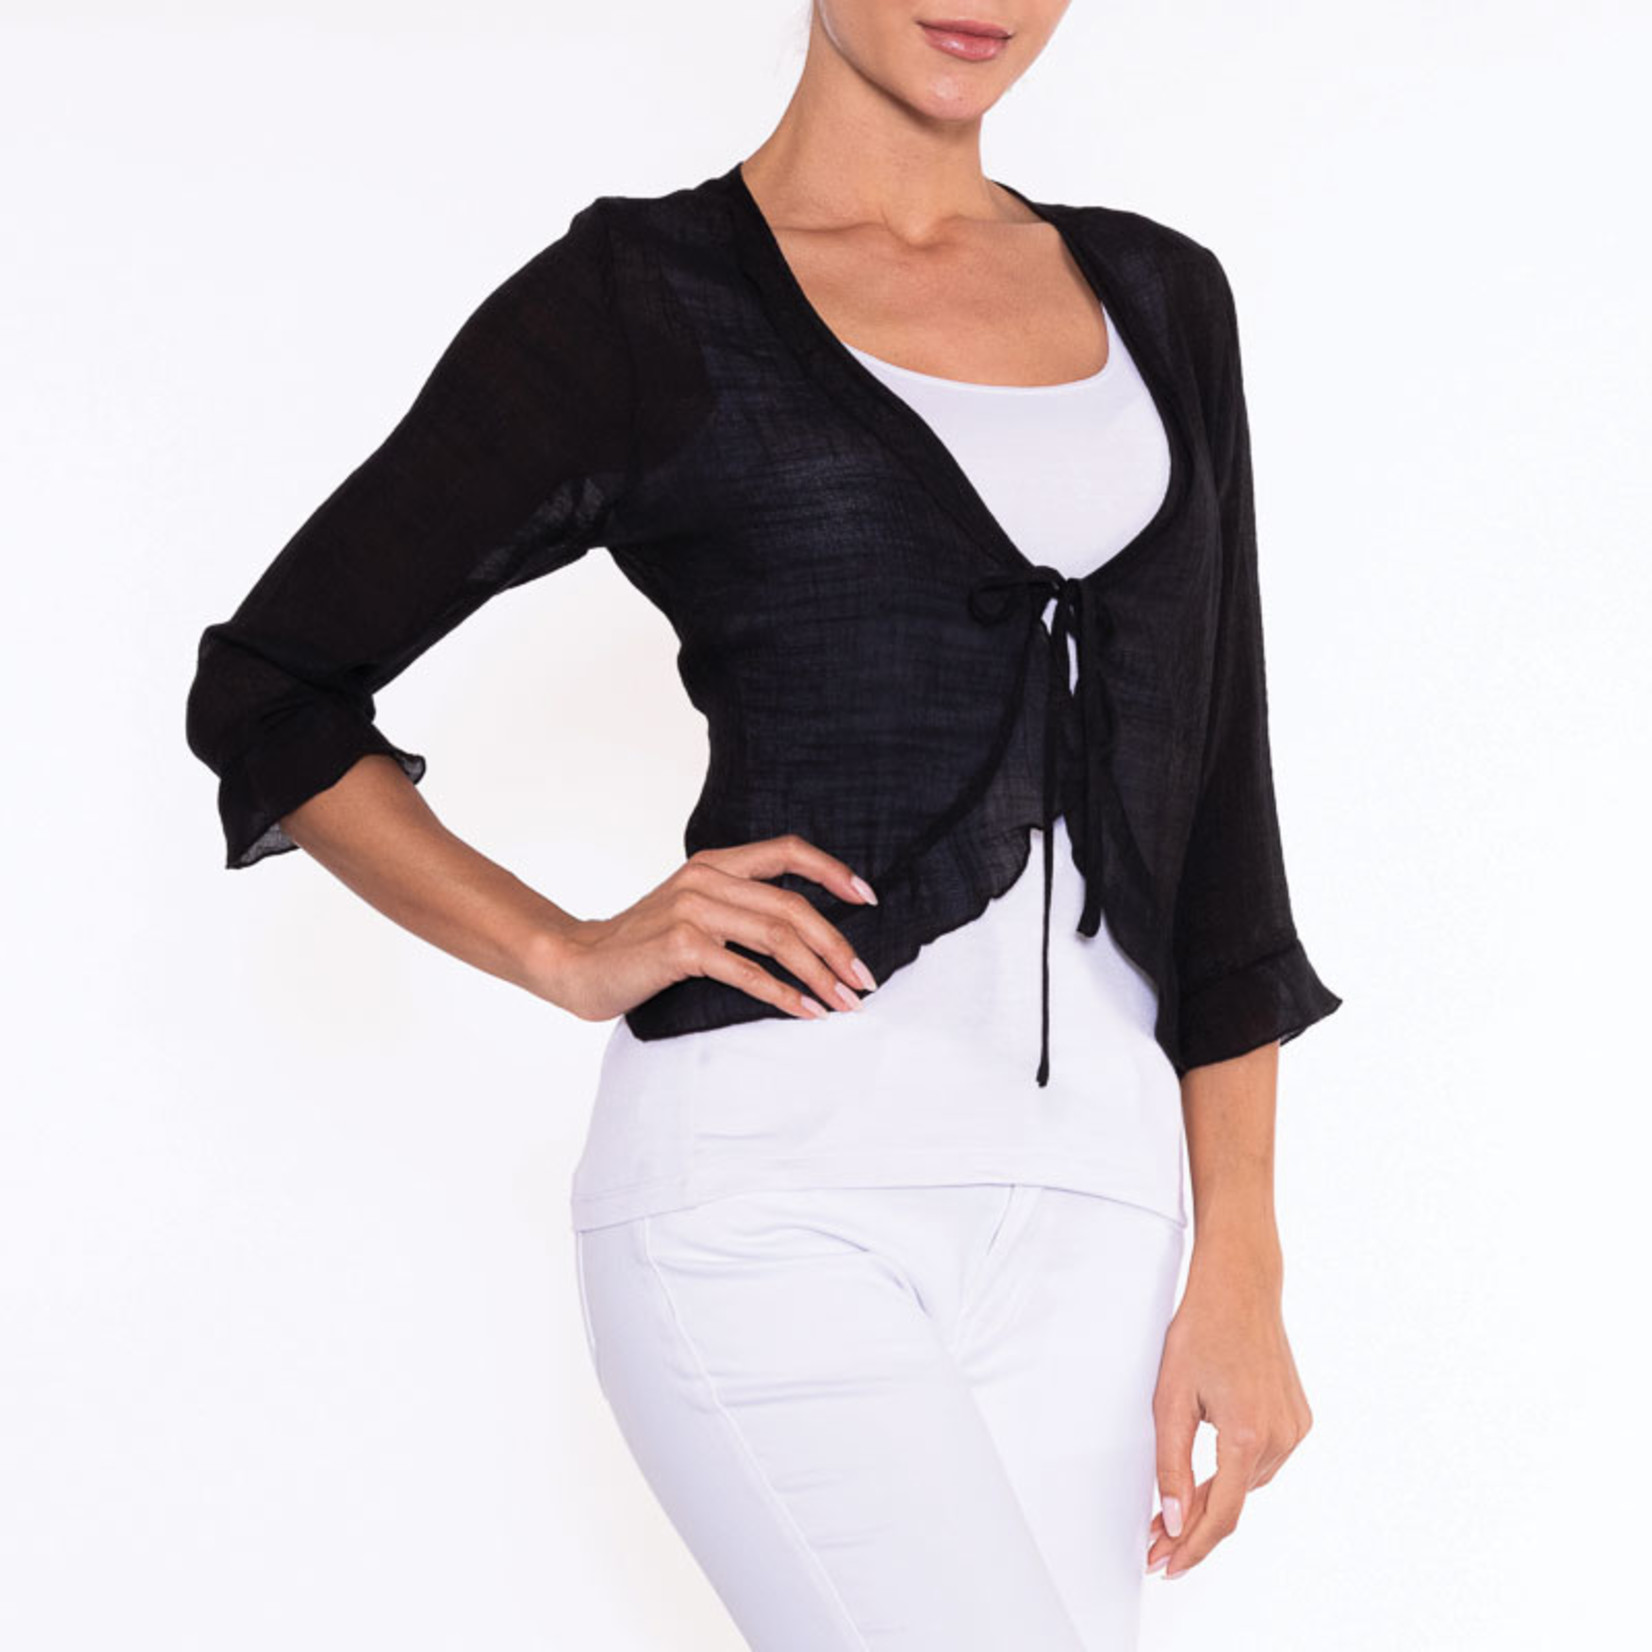 Woven Sheer Cardigan w/ Center Tie and Ruffle Details